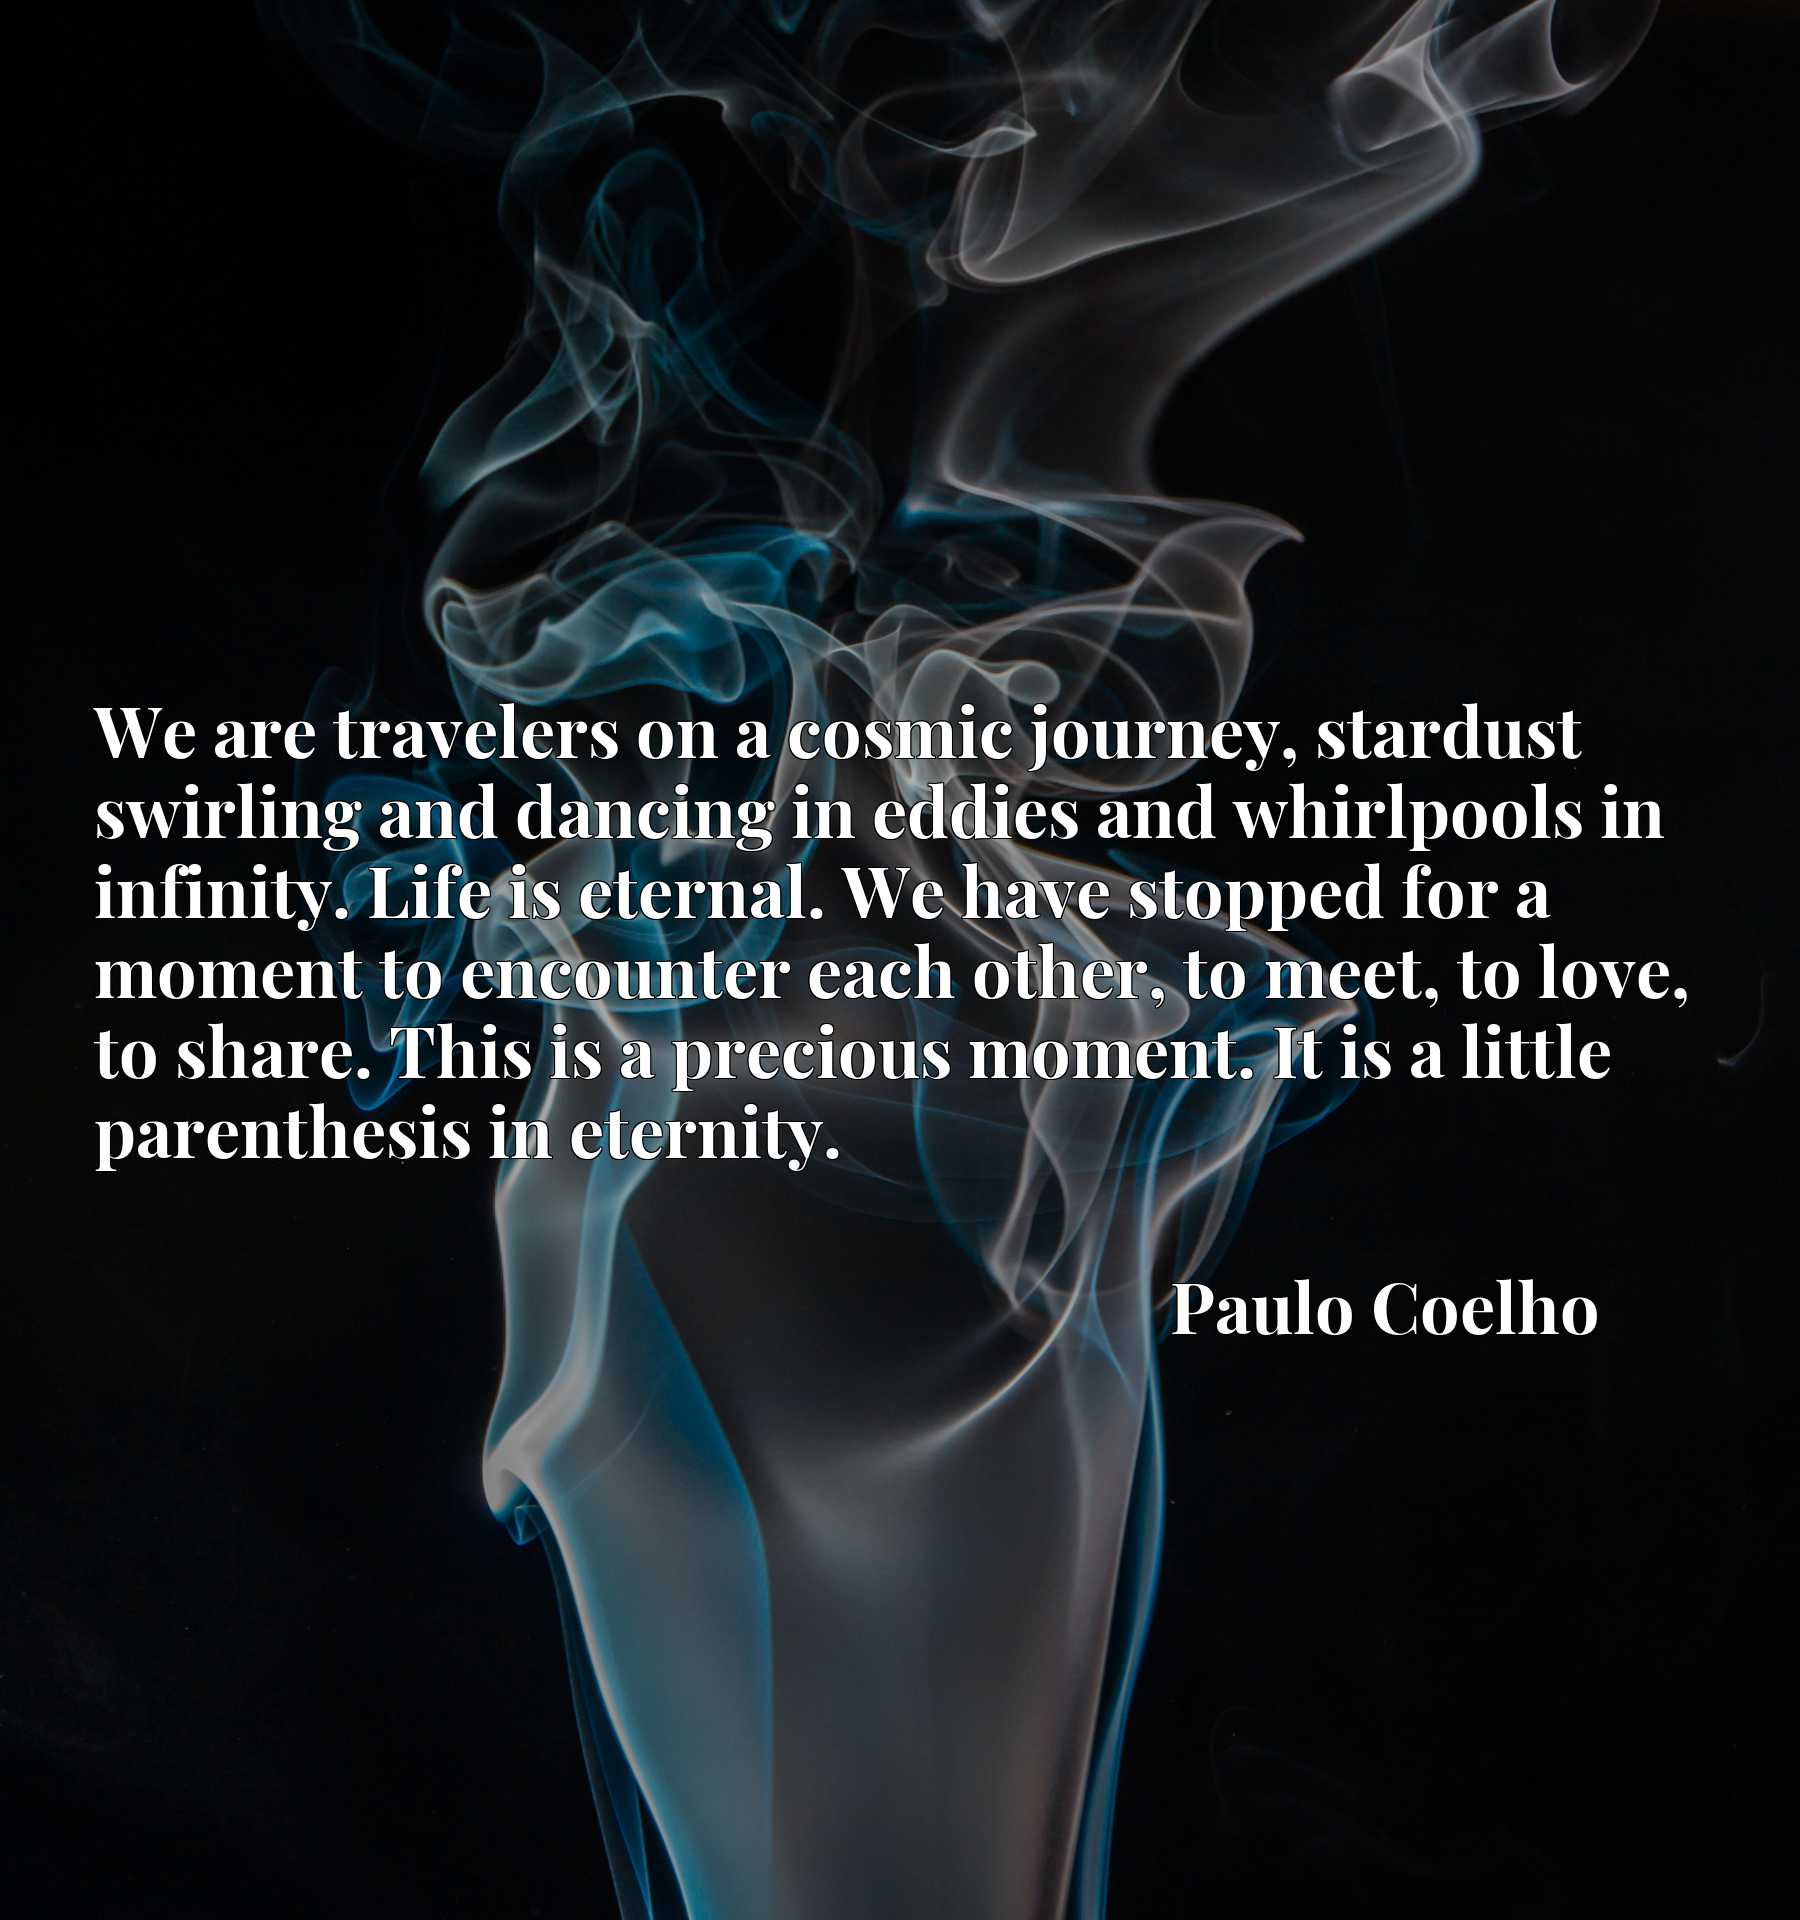 We are travelers on a cosmic journey, stardust swirling and dancing in eddies and whirlpools in infinity. Life is eternal. We have stopped for a moment to encounter each other, to meet, to love, to share. This is a precious moment. It is a little parenthesis in eternity.